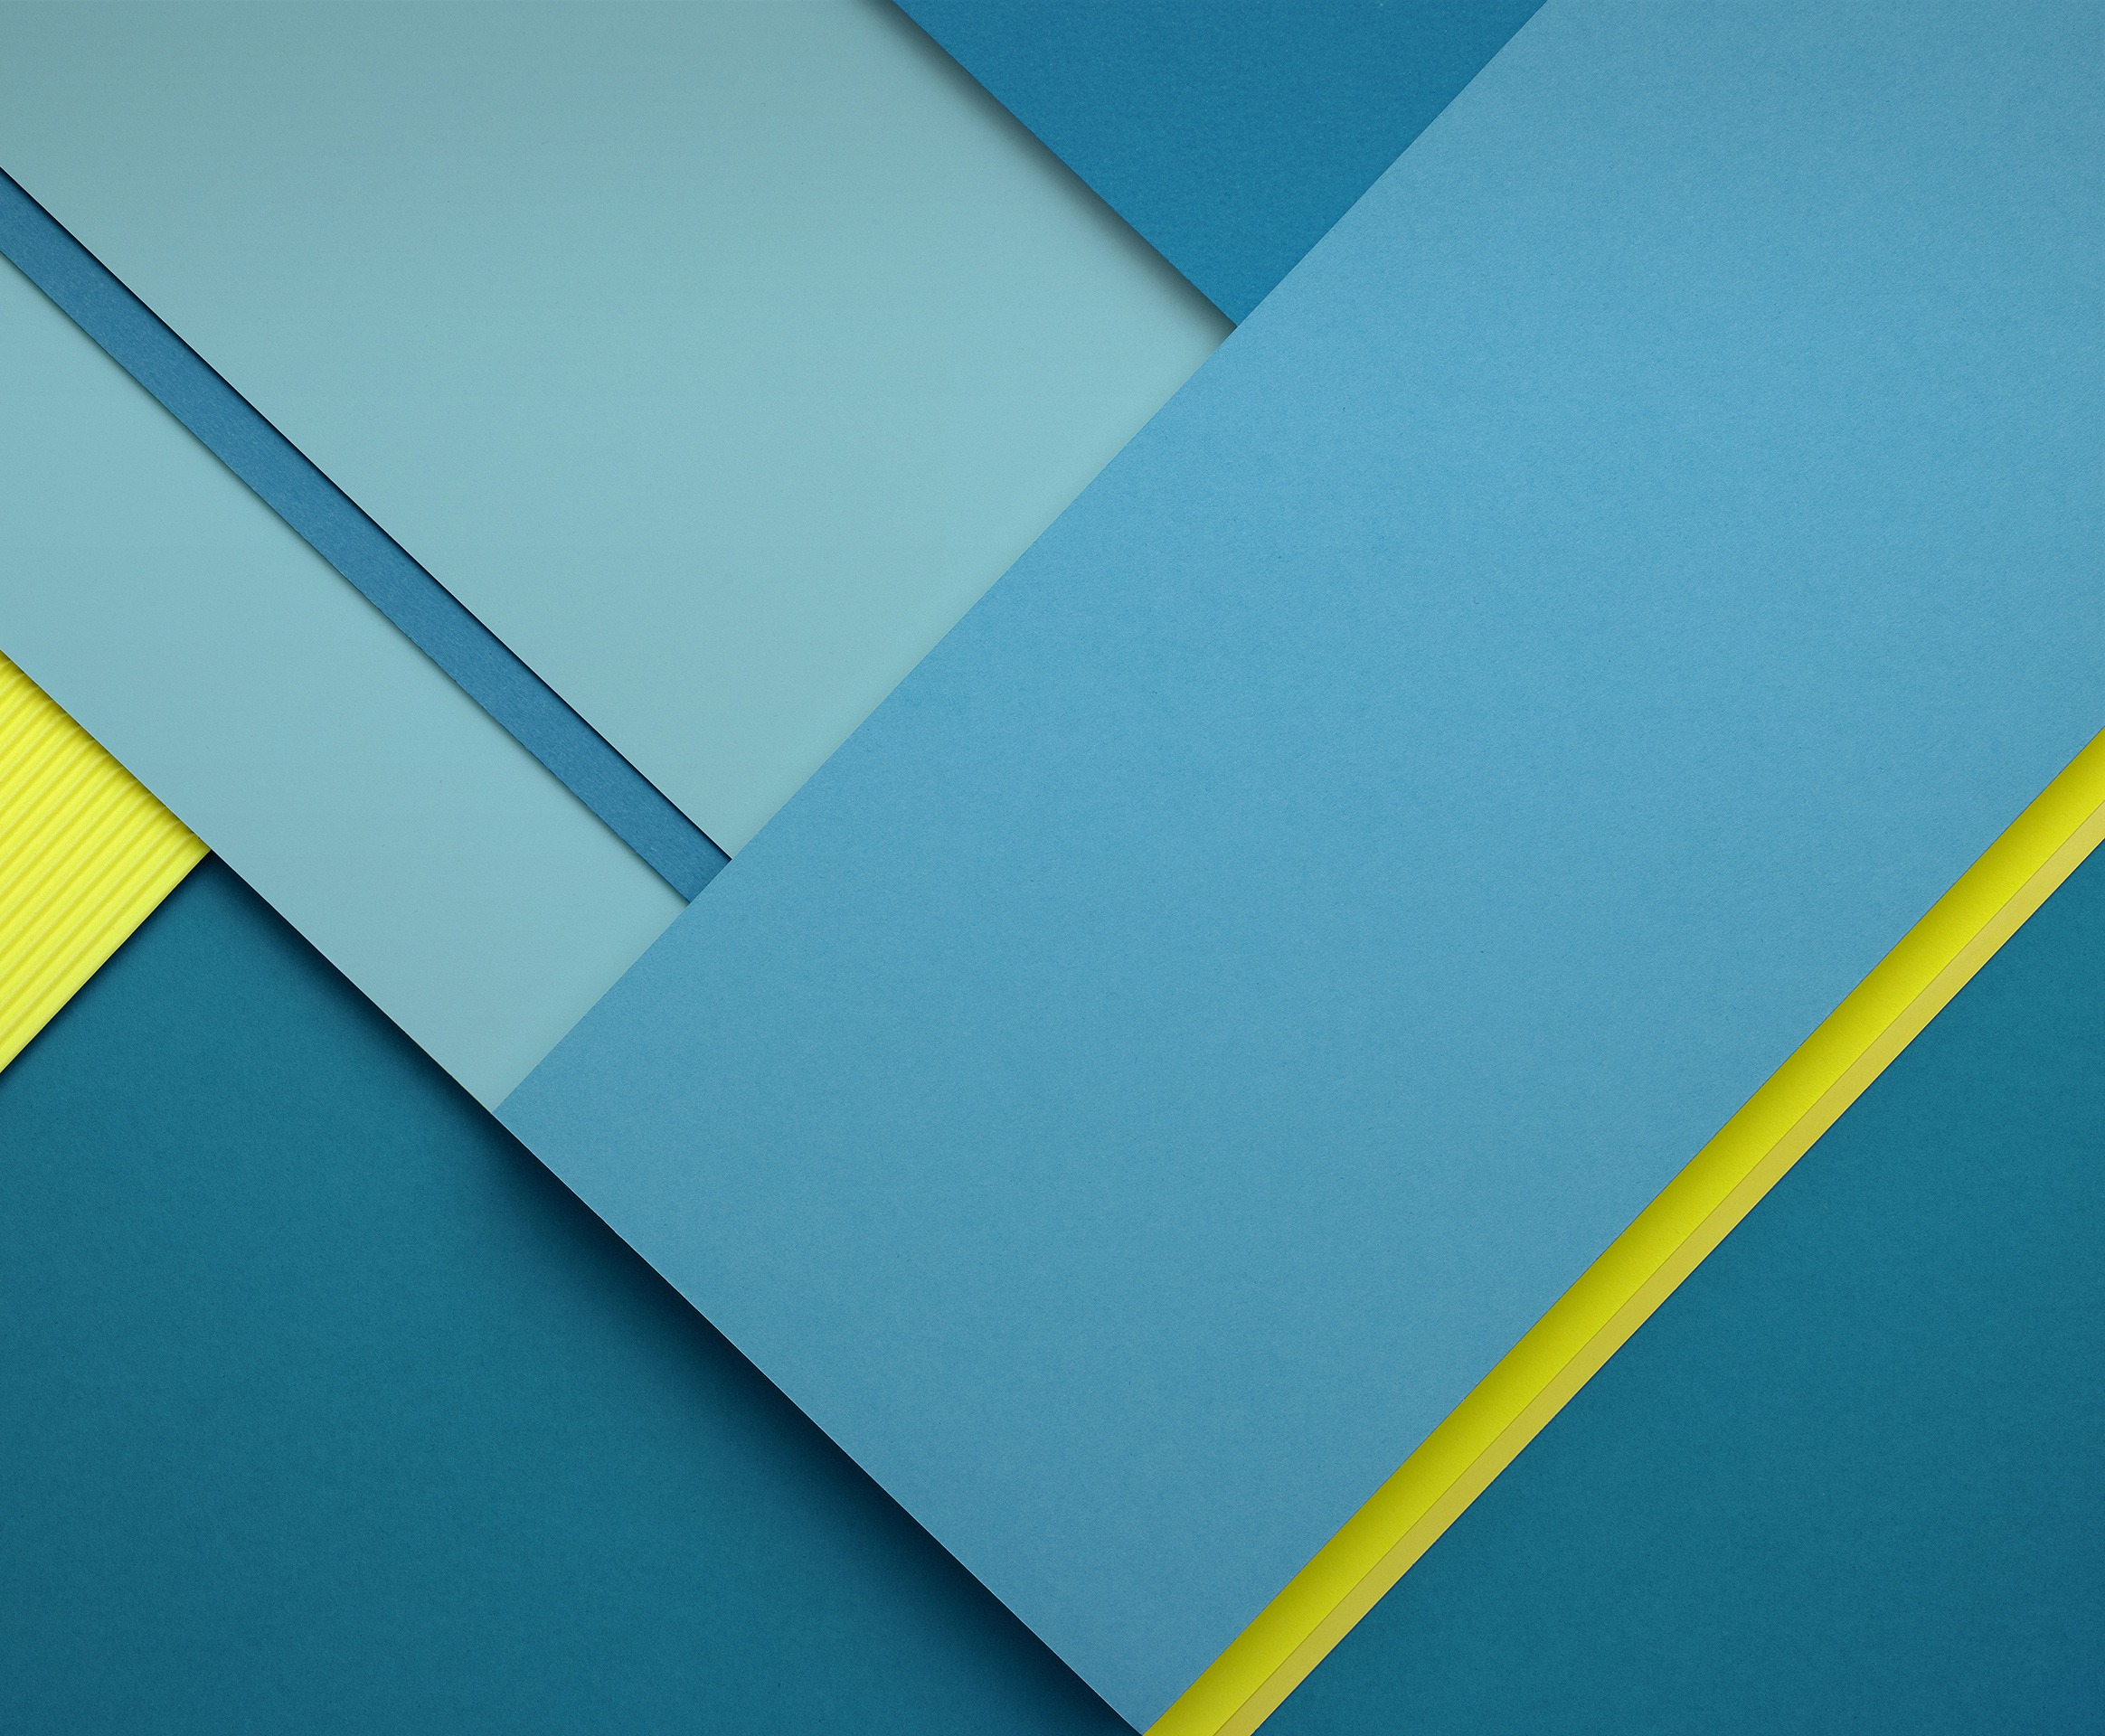 Download: 11 wallpapers from android 5.0 lollipop